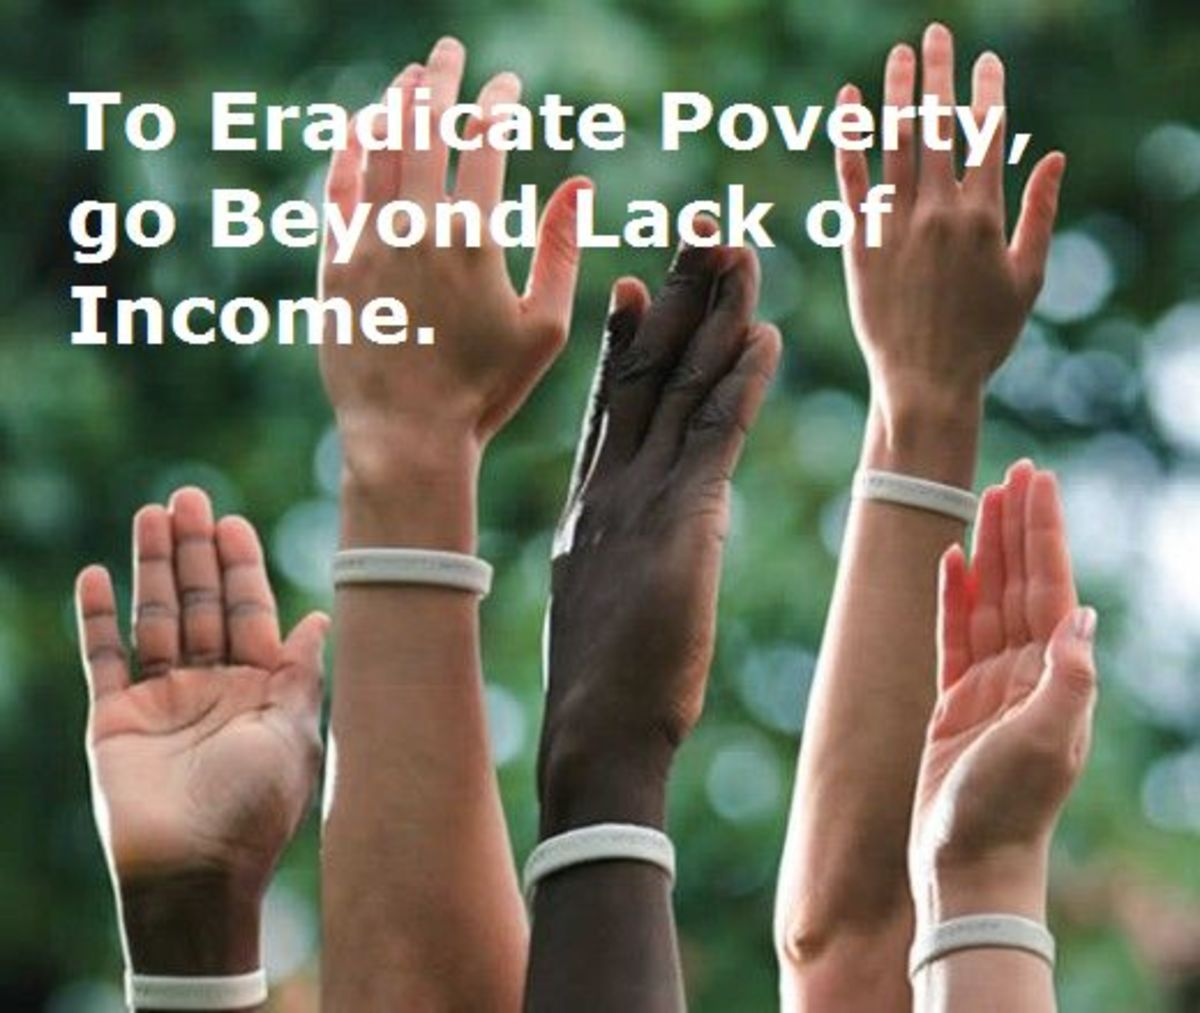 End poverty Now!